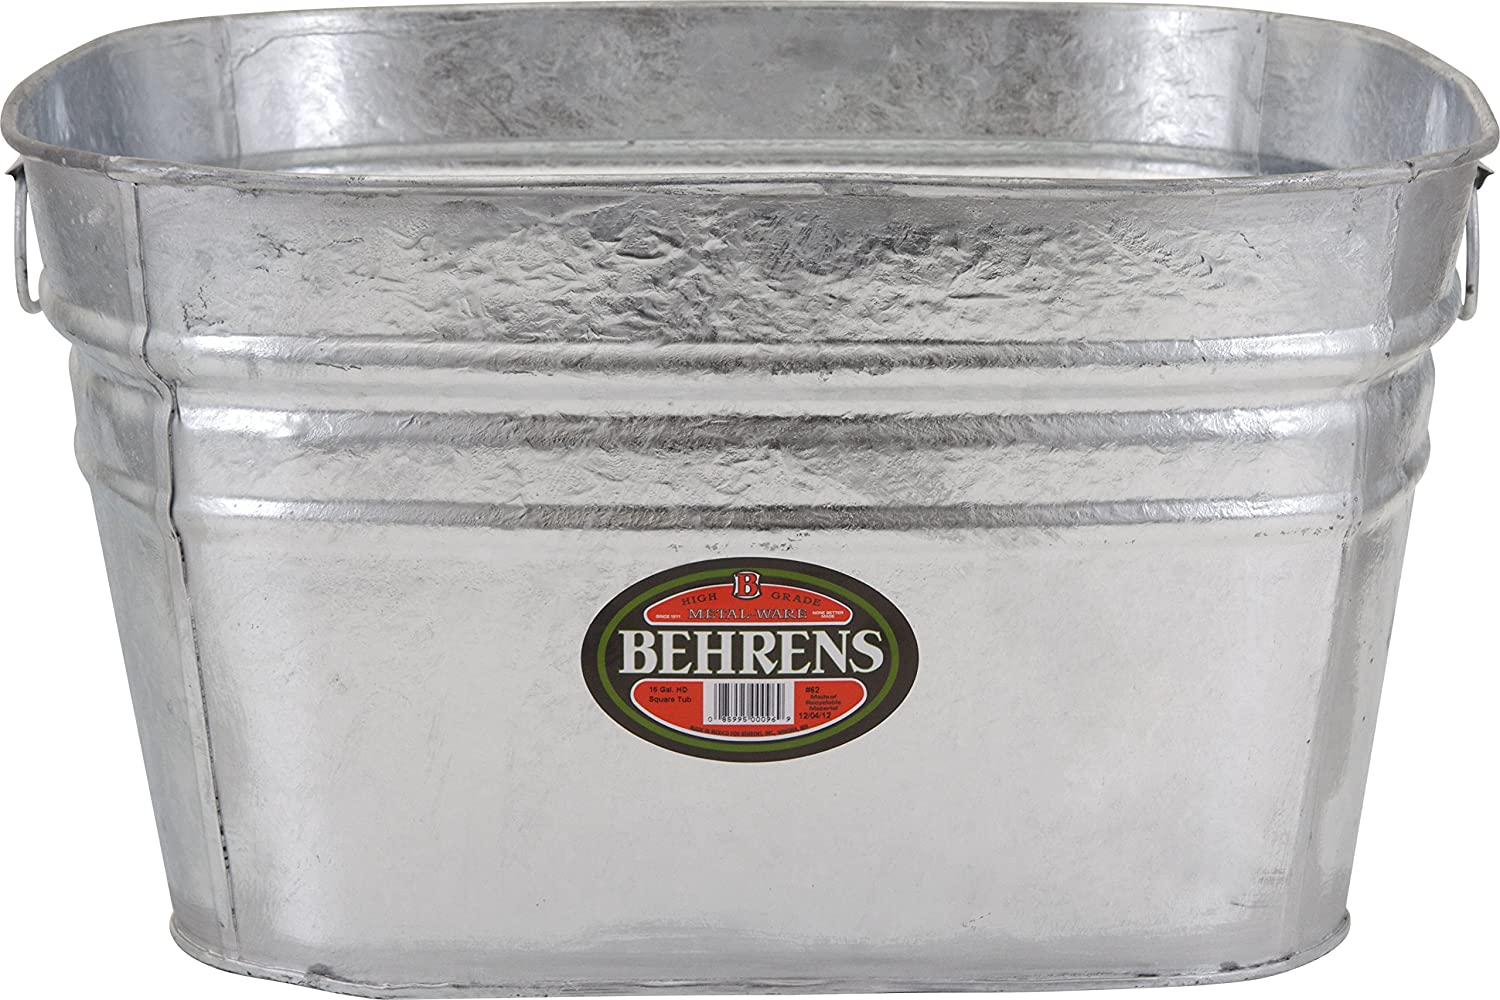 Behrens 62 Stainless Steel Tub, 15 gallon, Silver